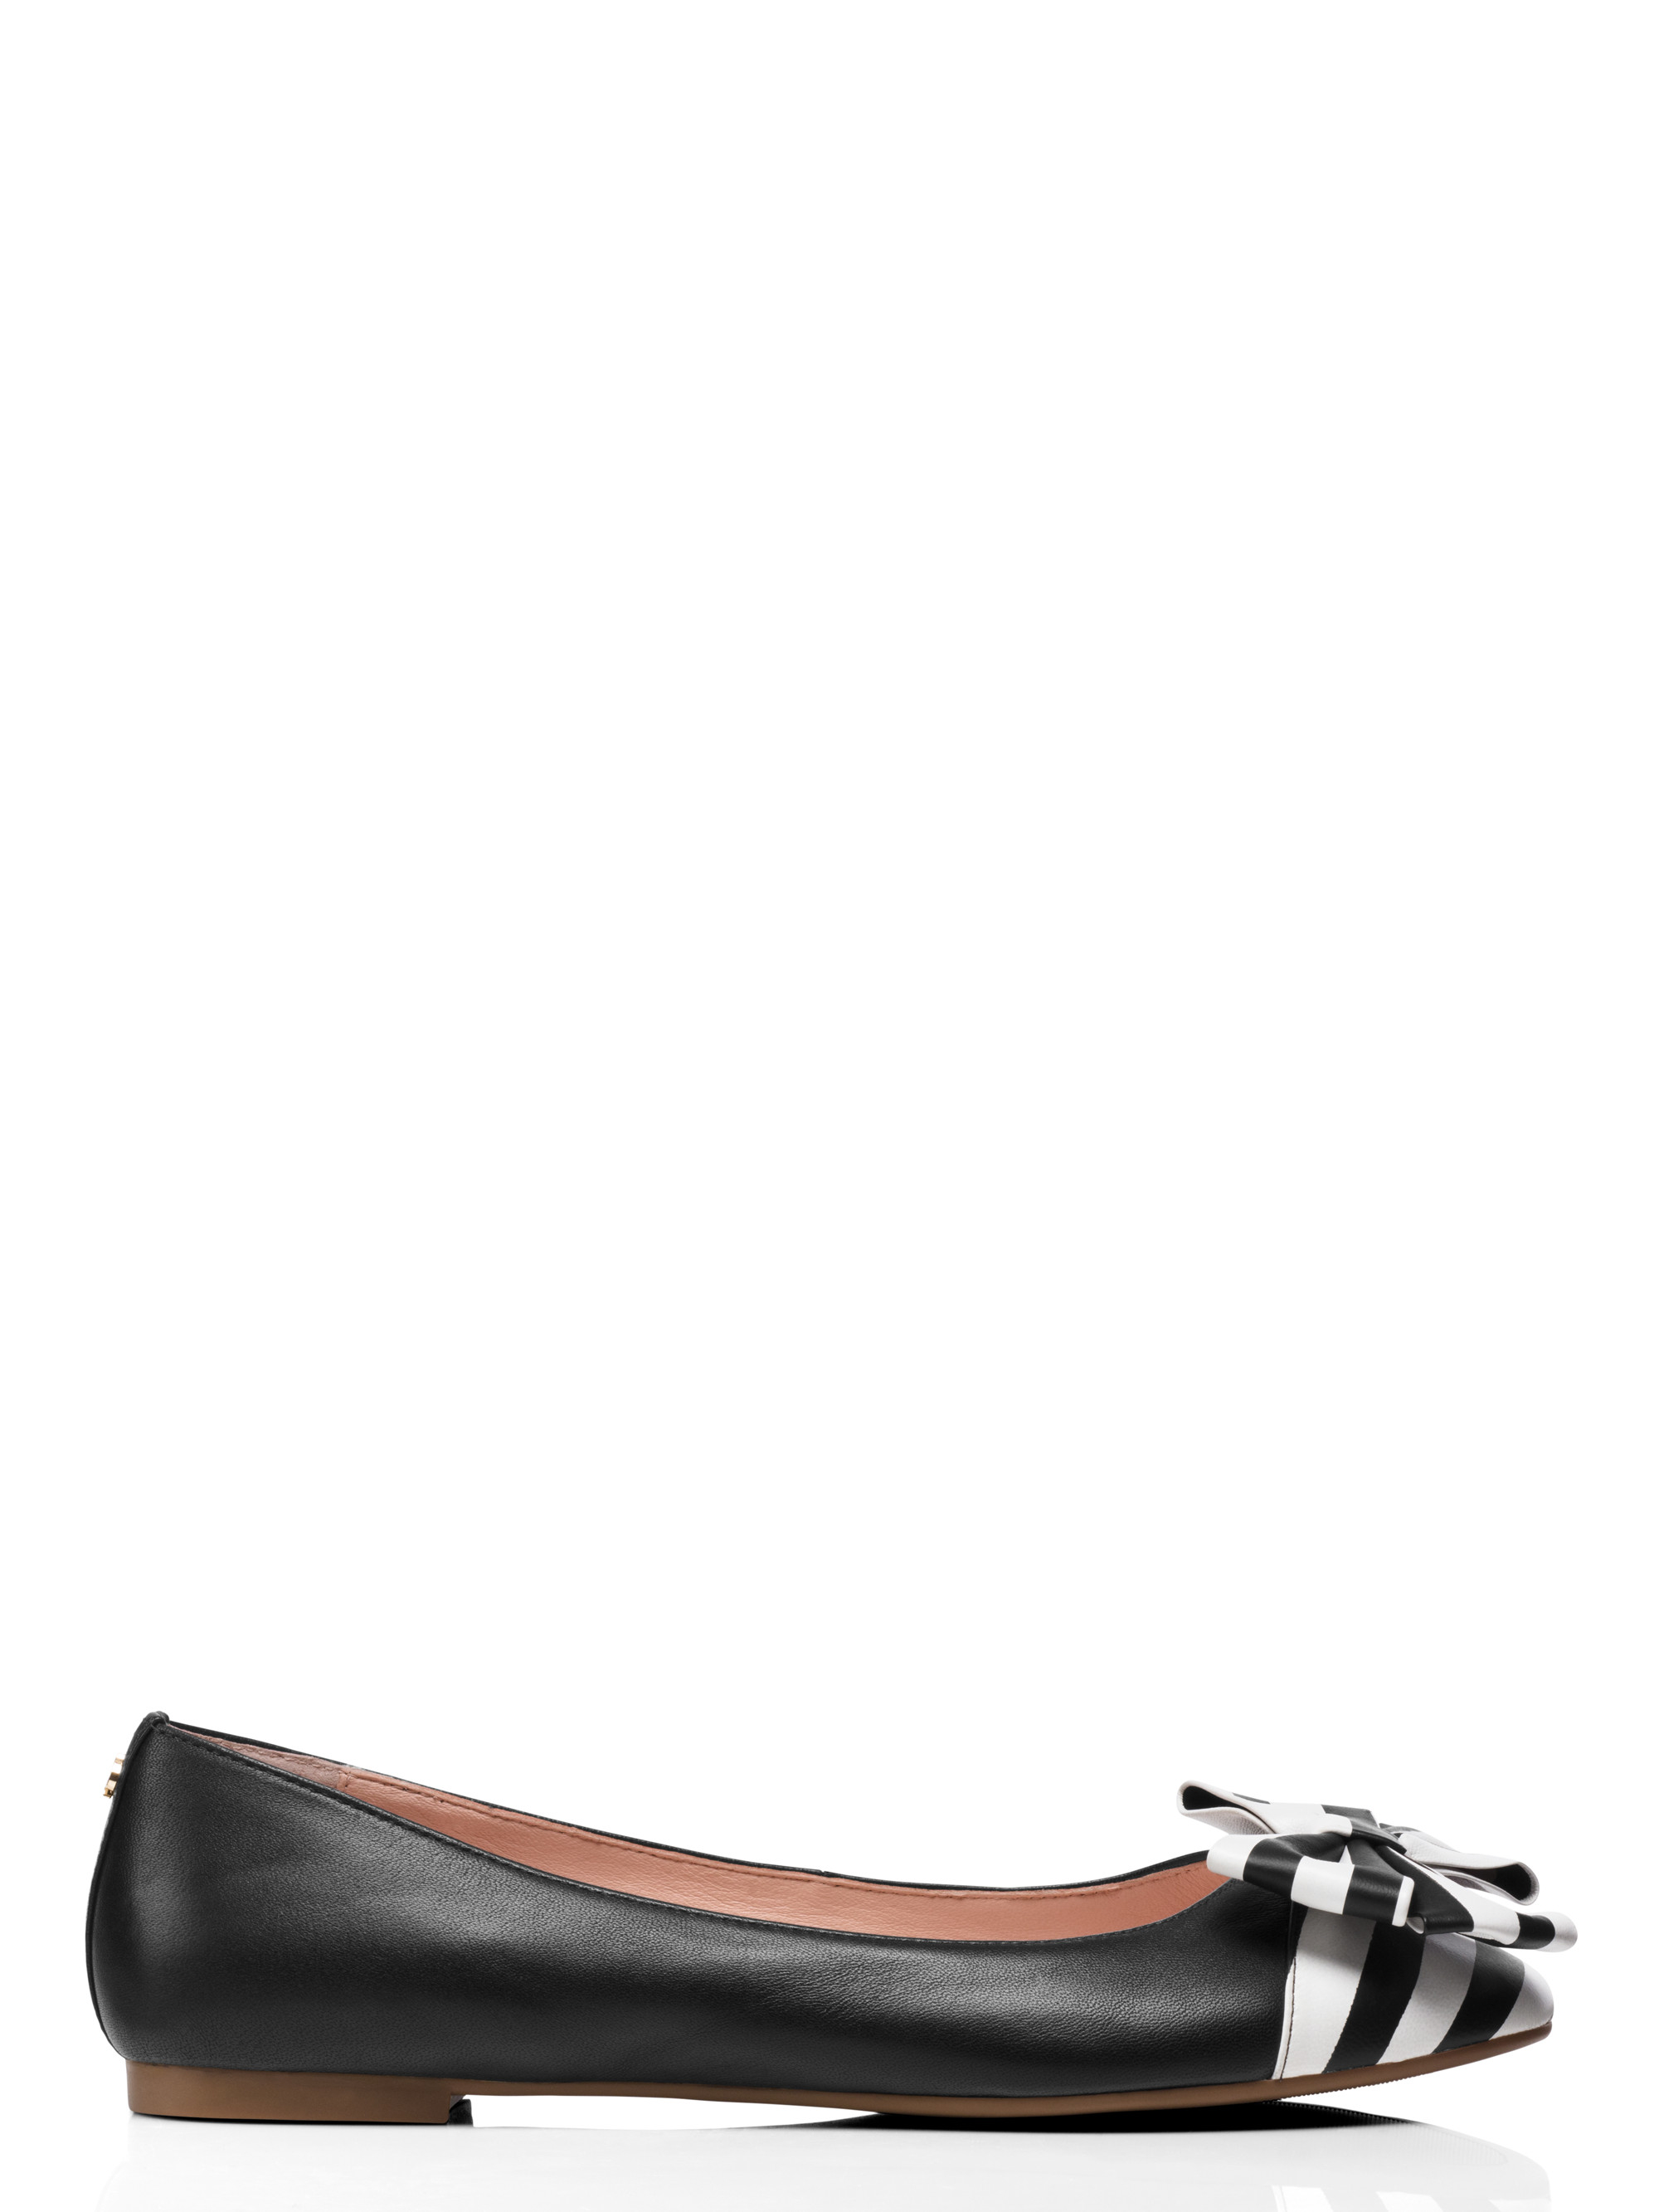 Kate spade new york wallace flats in black lyst for Kate spade new york flats